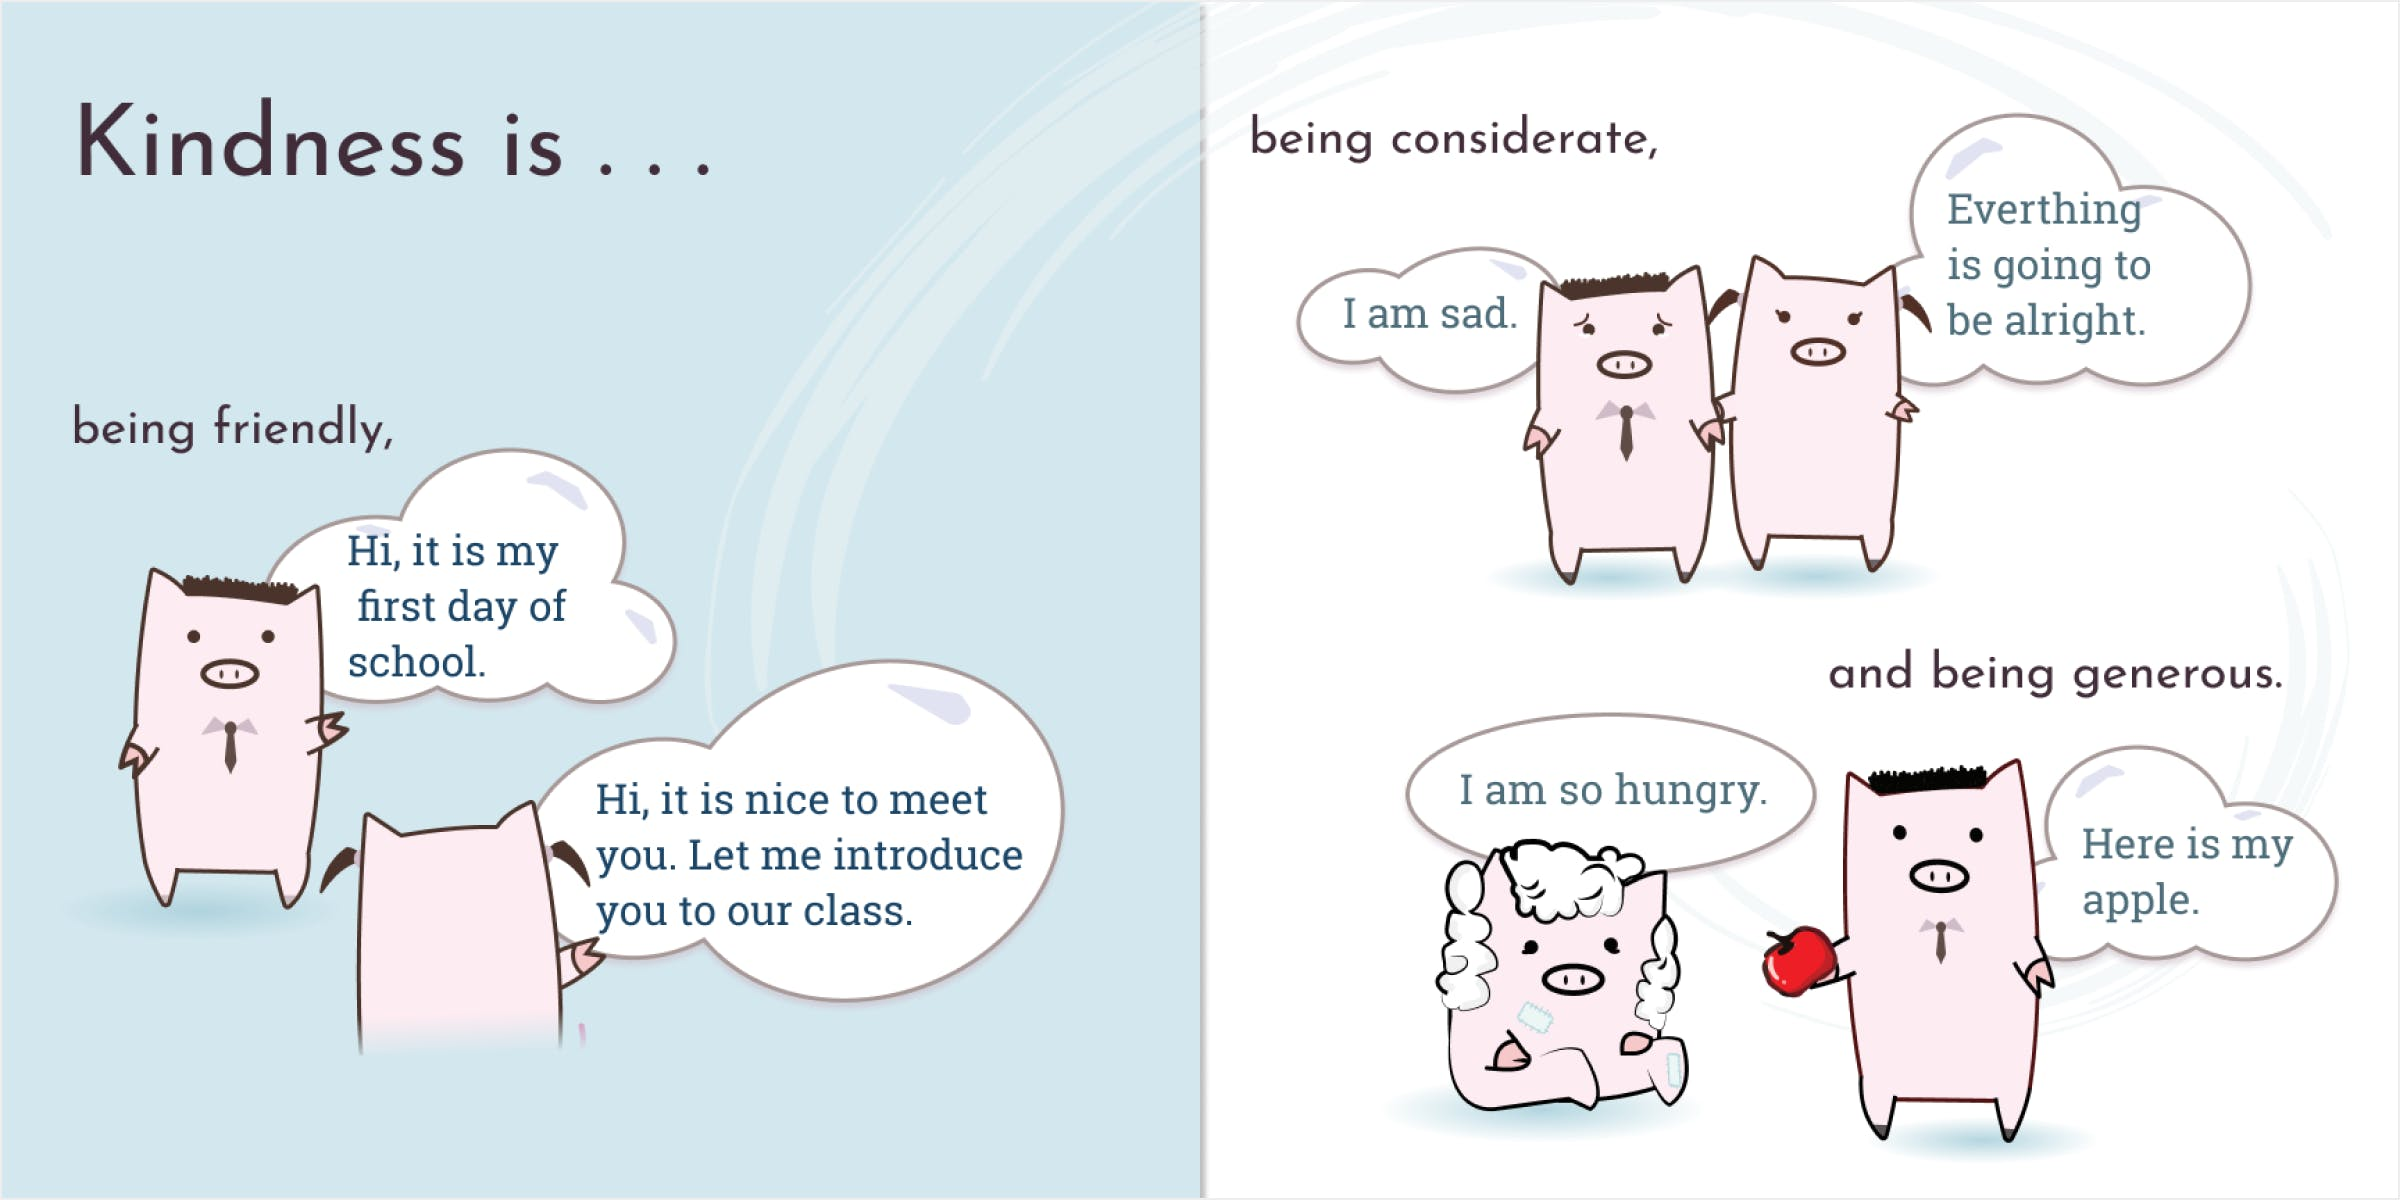 Illustrations of pigs depicting a scenario of kindness